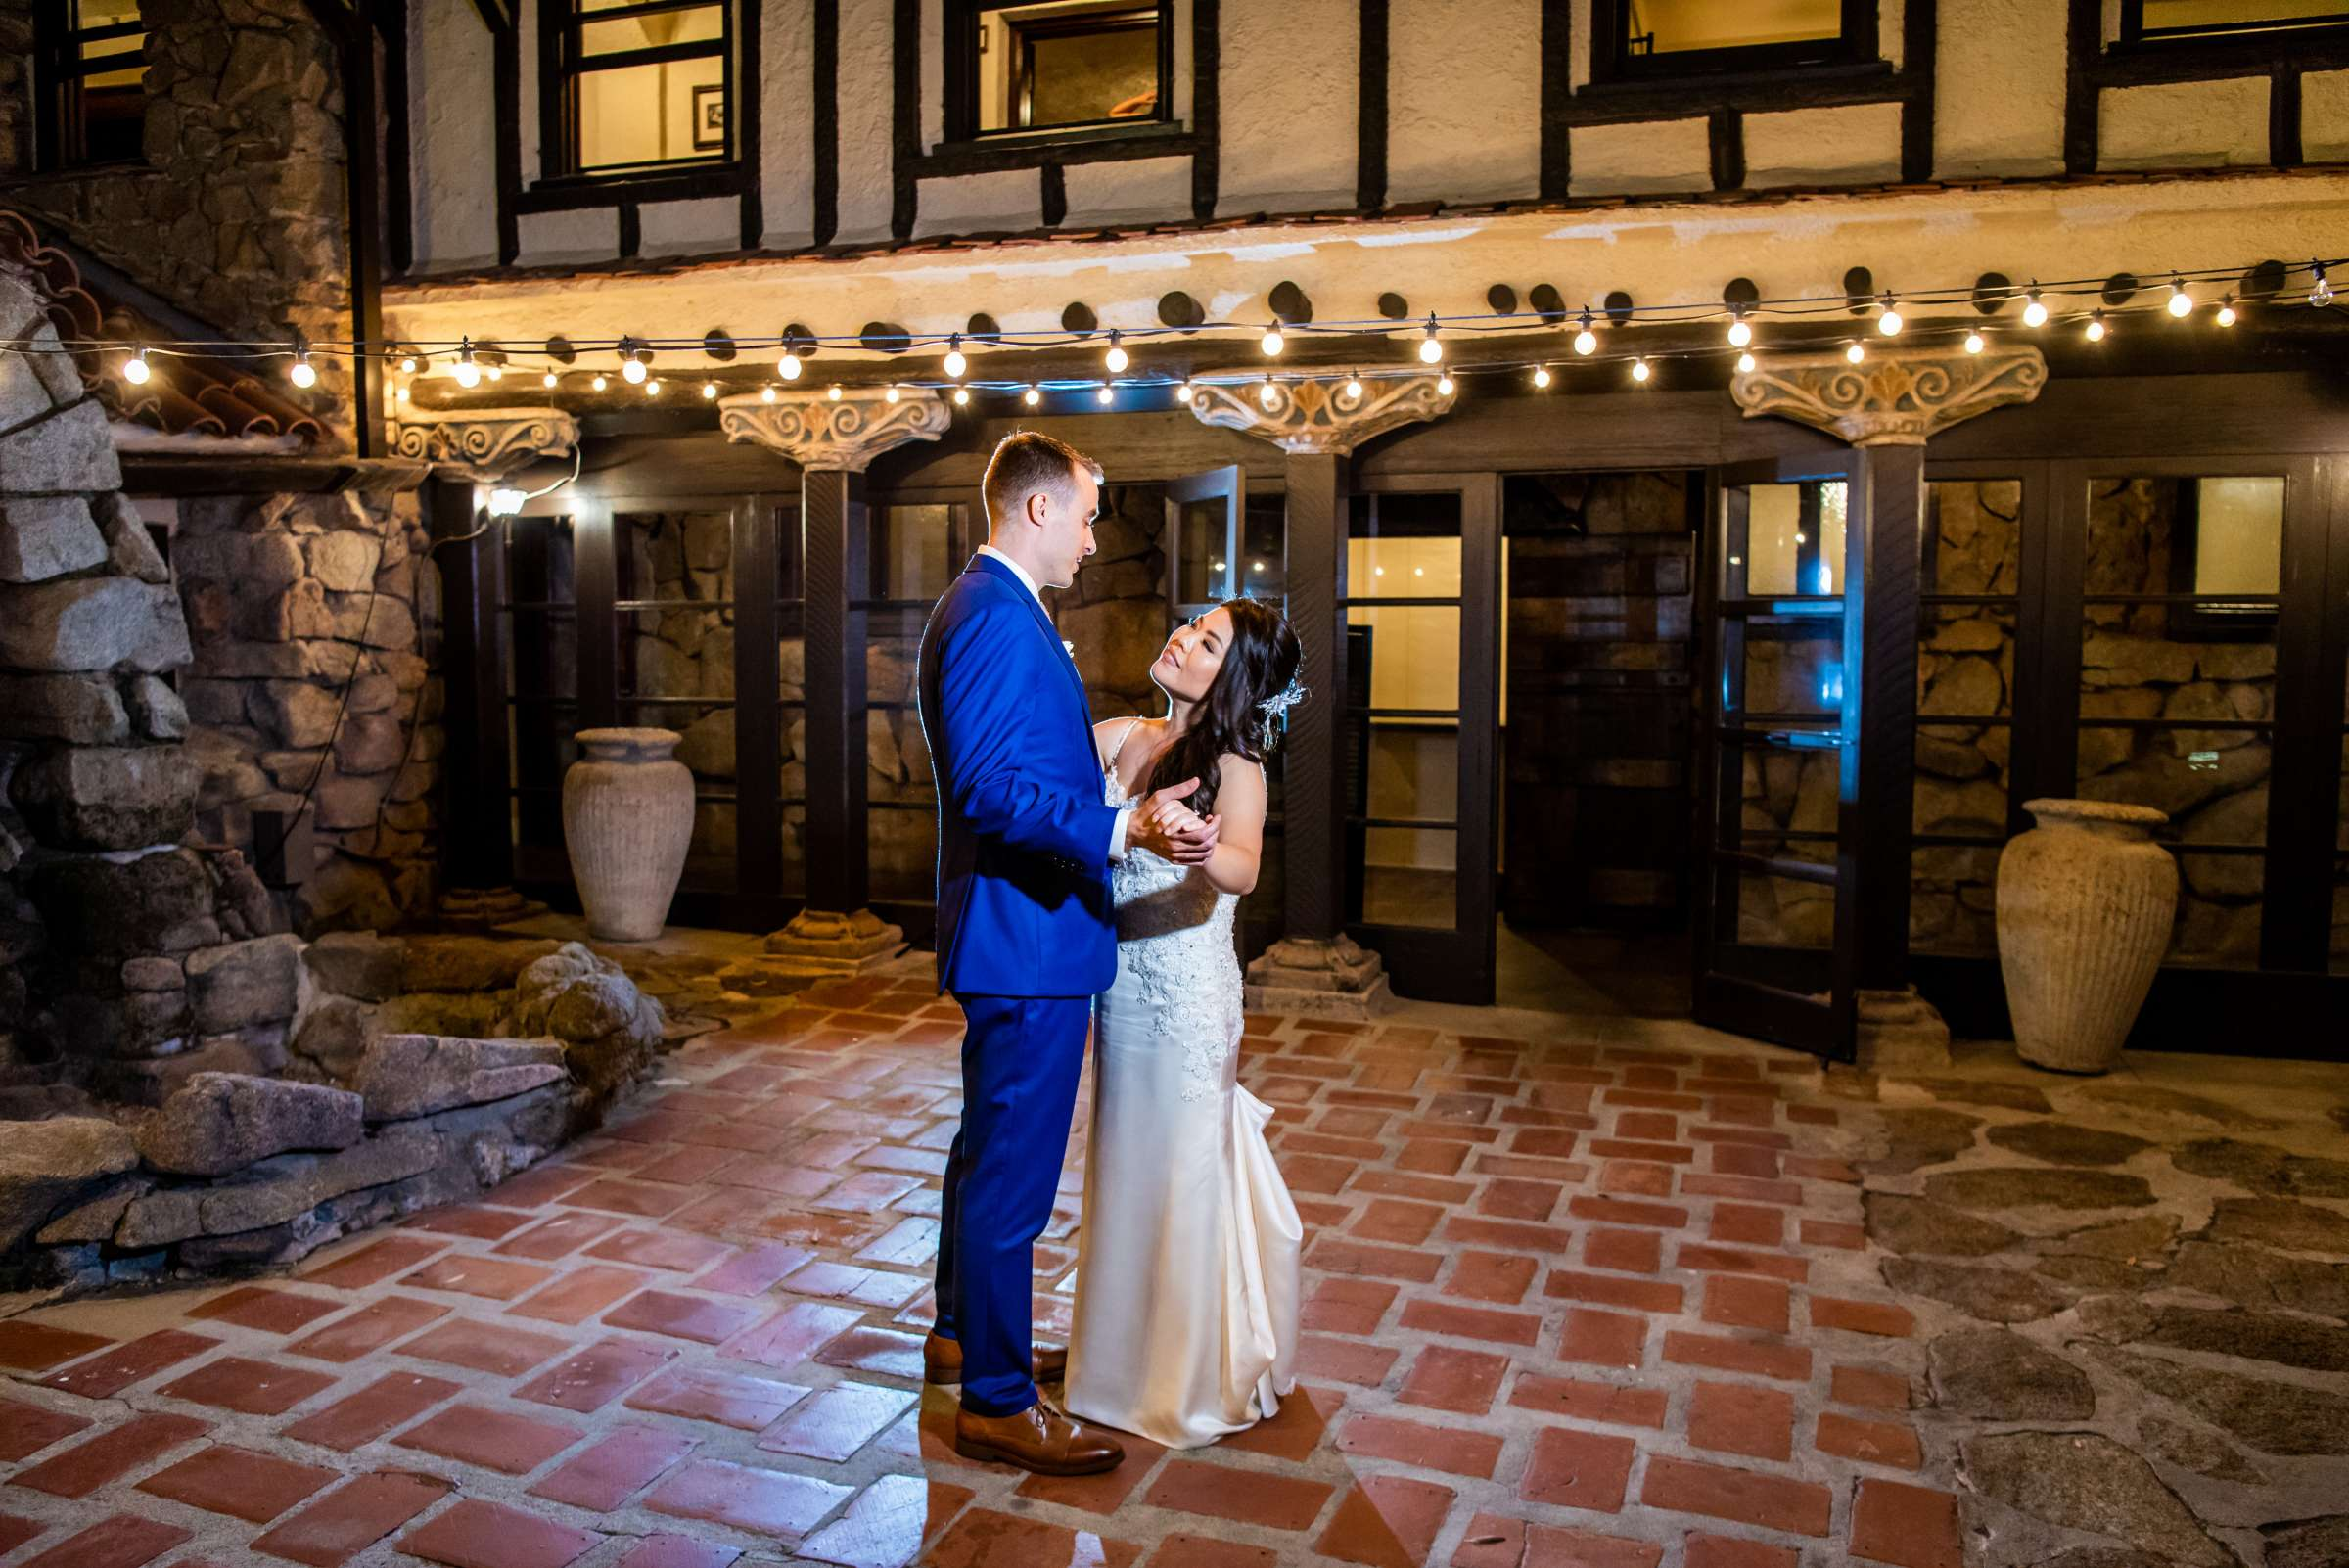 Mt Woodson Castle Wedding coordinated by I Do Weddings, Aya and Jared Wedding Photo #487008 by True Photography